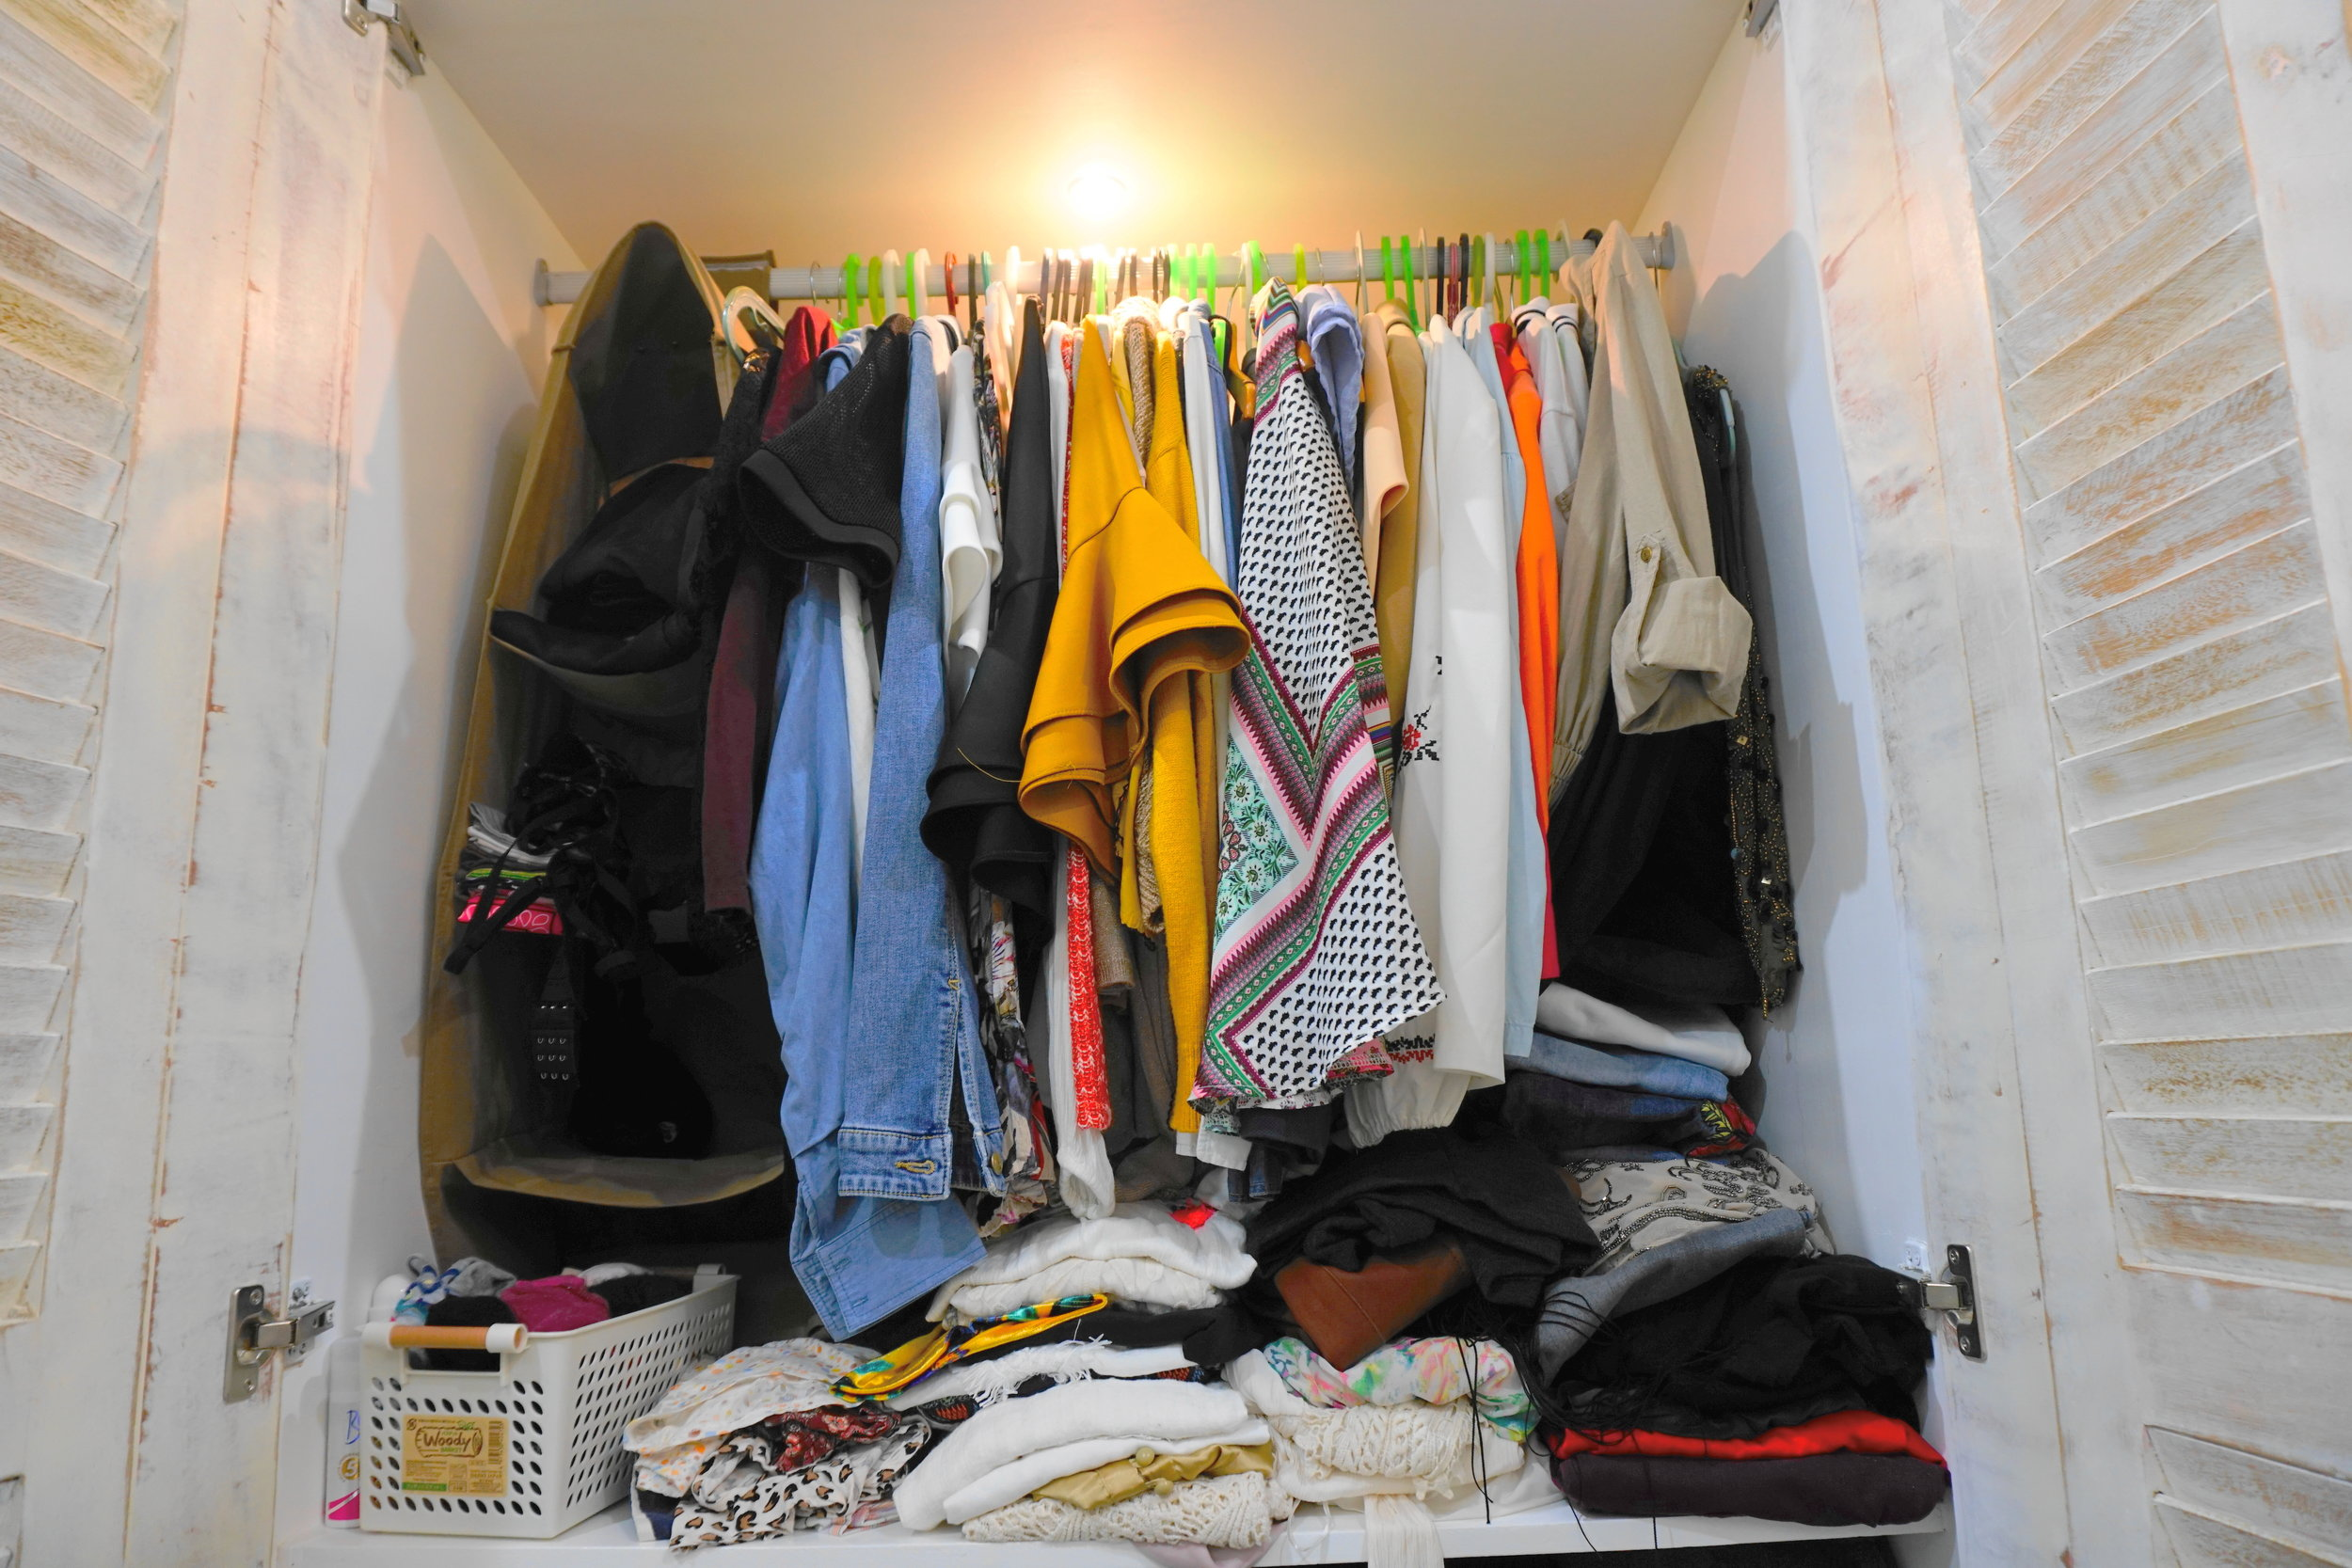 Before_hanging_clothes.JPG